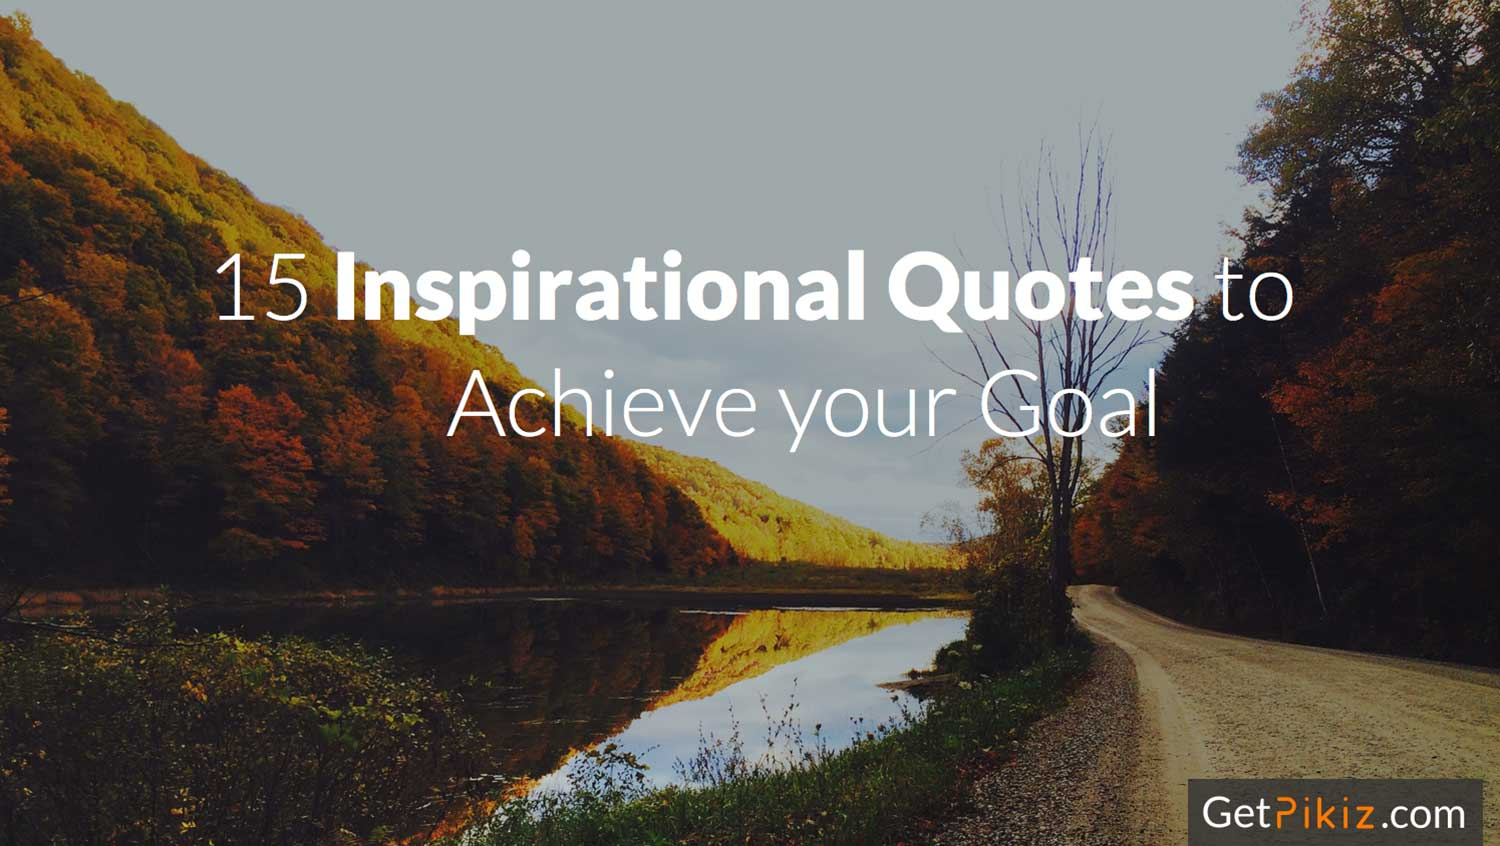 15 Inspirational quotes to achieve your goal